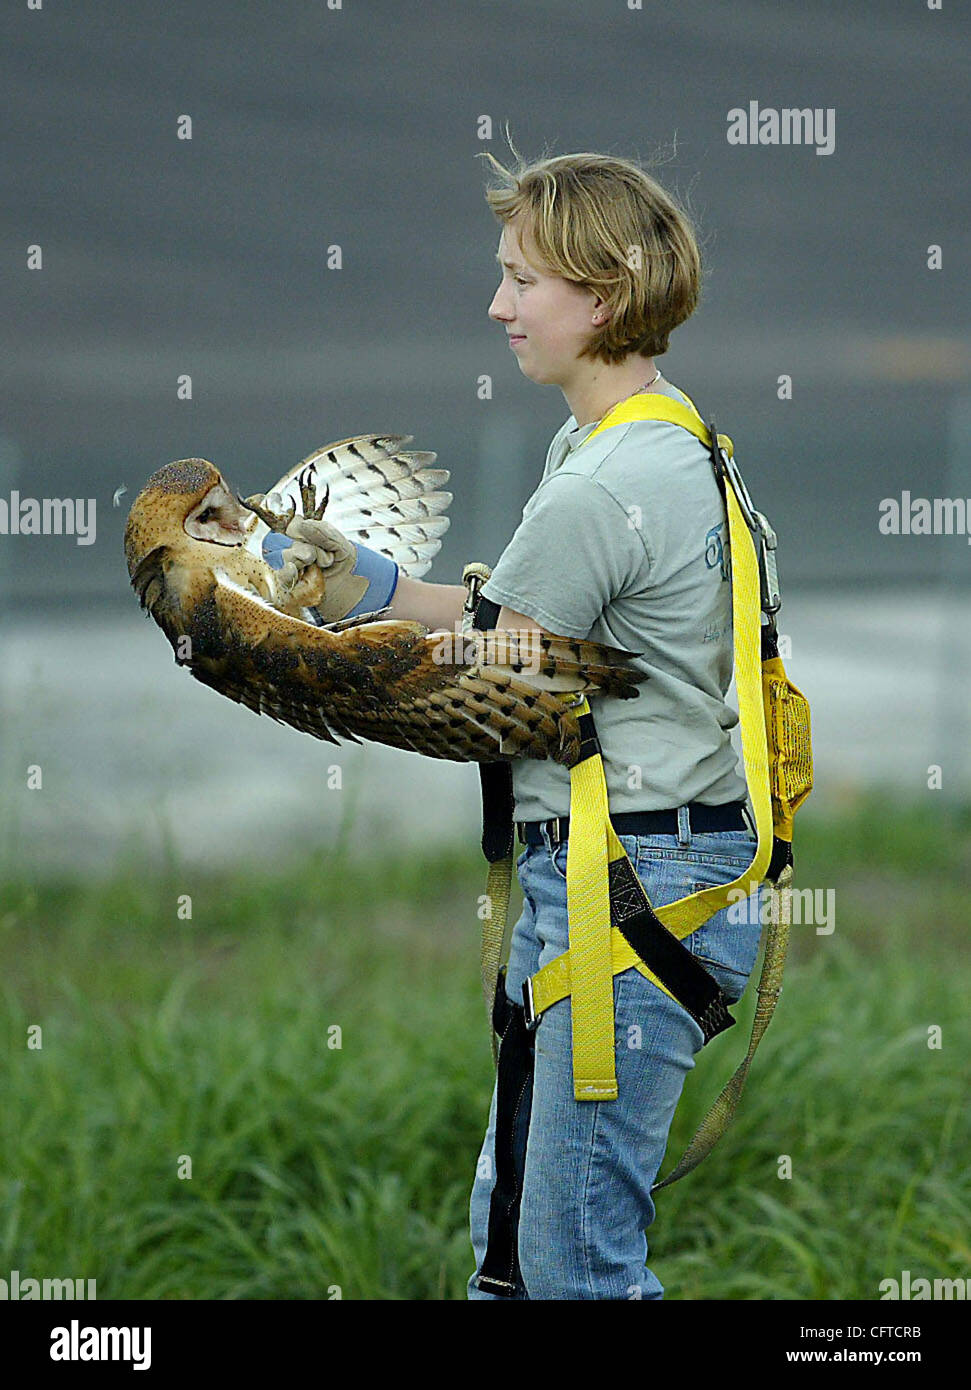 tc met of owl meghan mccarthy the palm beach post 010507 tc met 6of7 owl meghan mccarthy the palm beach post 0031999a clo palm city treasure coast wildlife center the center prefers to be called this